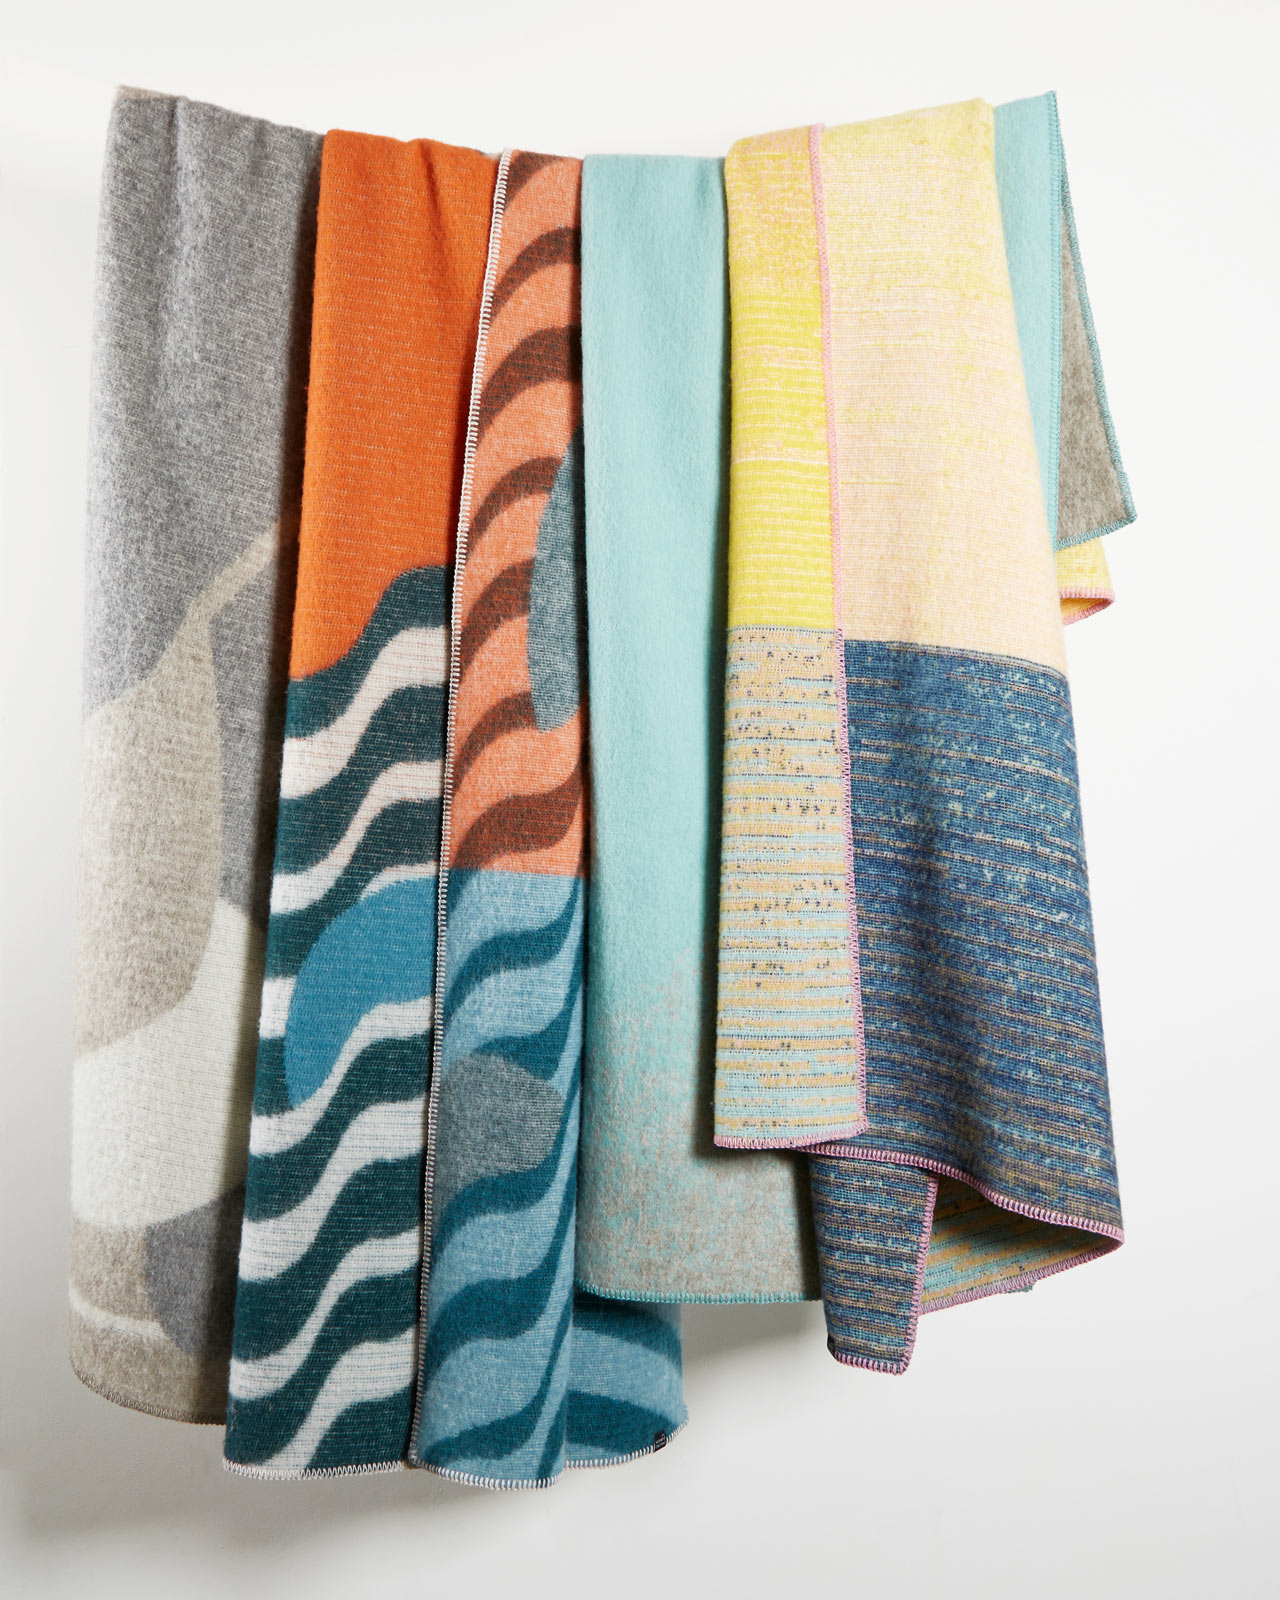 ZigZagZurich Introduces Artist Wool Blankets Inspired by Art